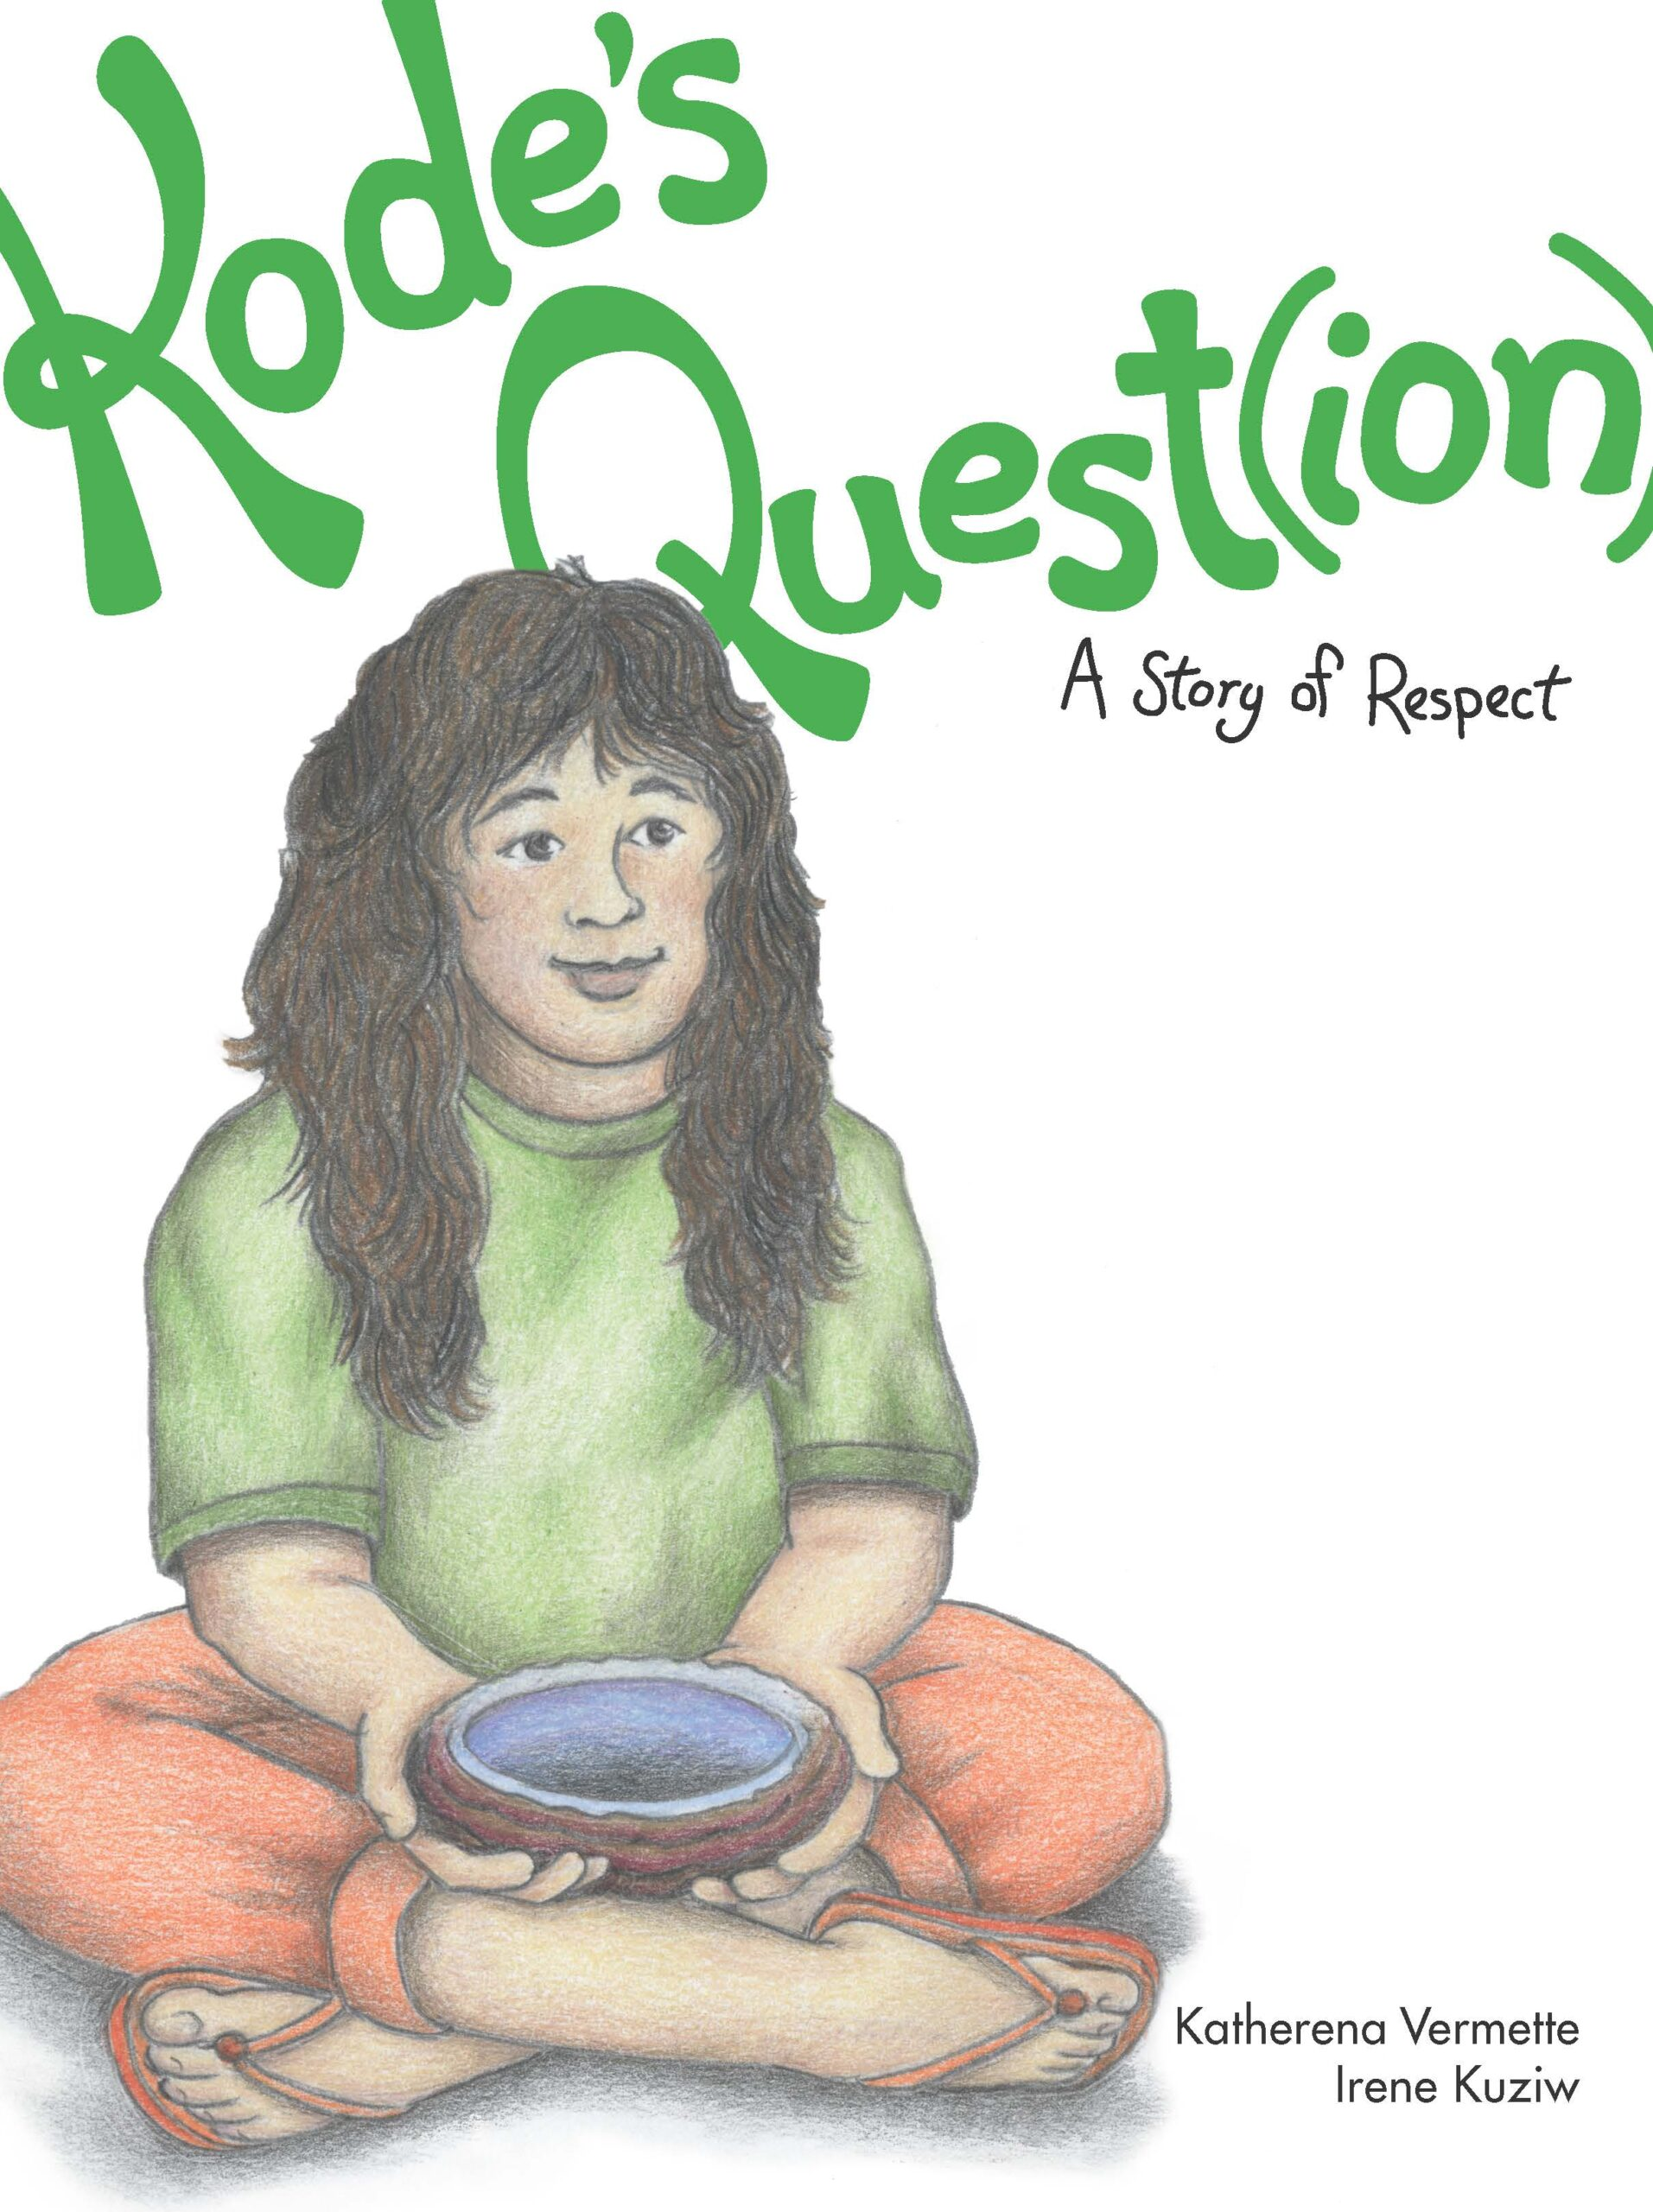 The book cover for Kode's Quest(ion): A Story of Respect by Katherena Vermette.